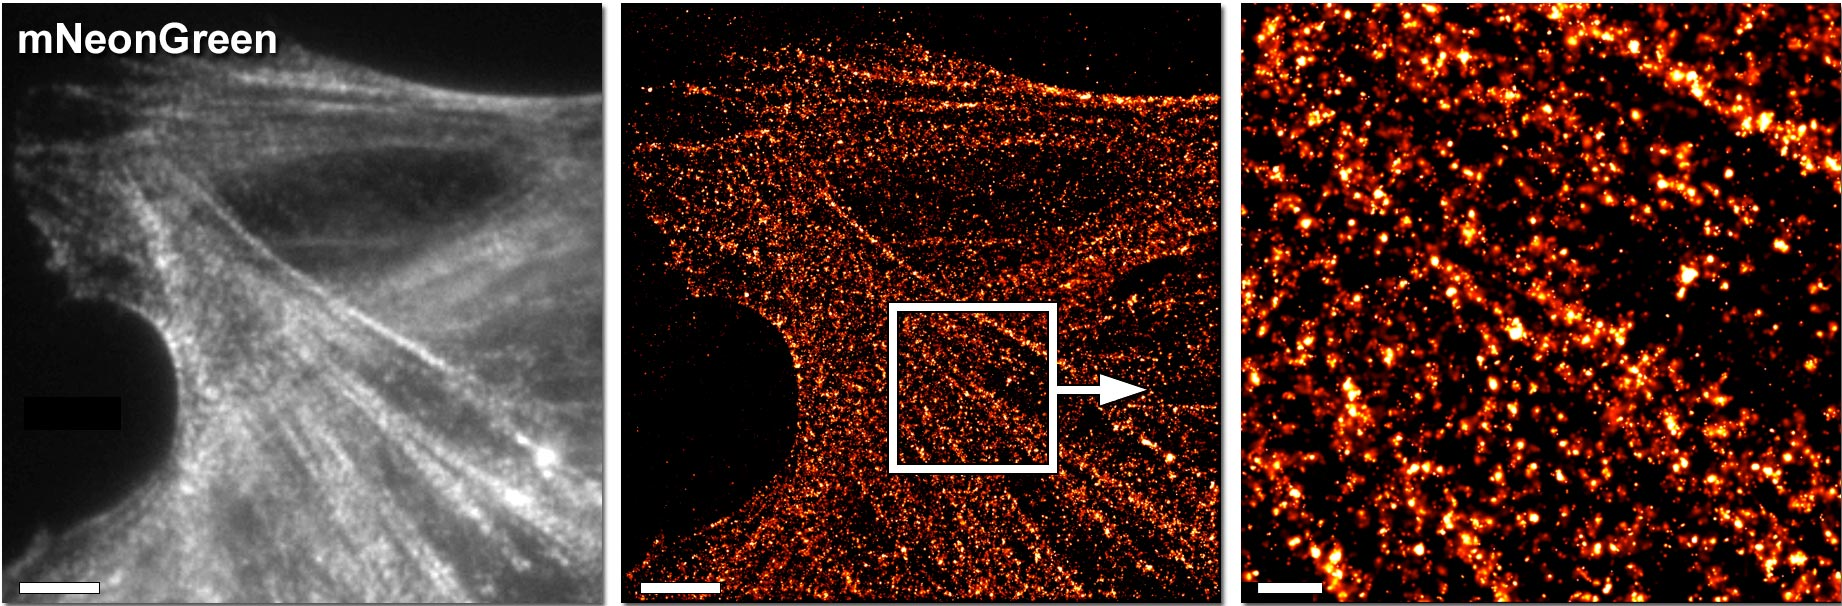 mNeonGreen Superresolution of Myosin IIA